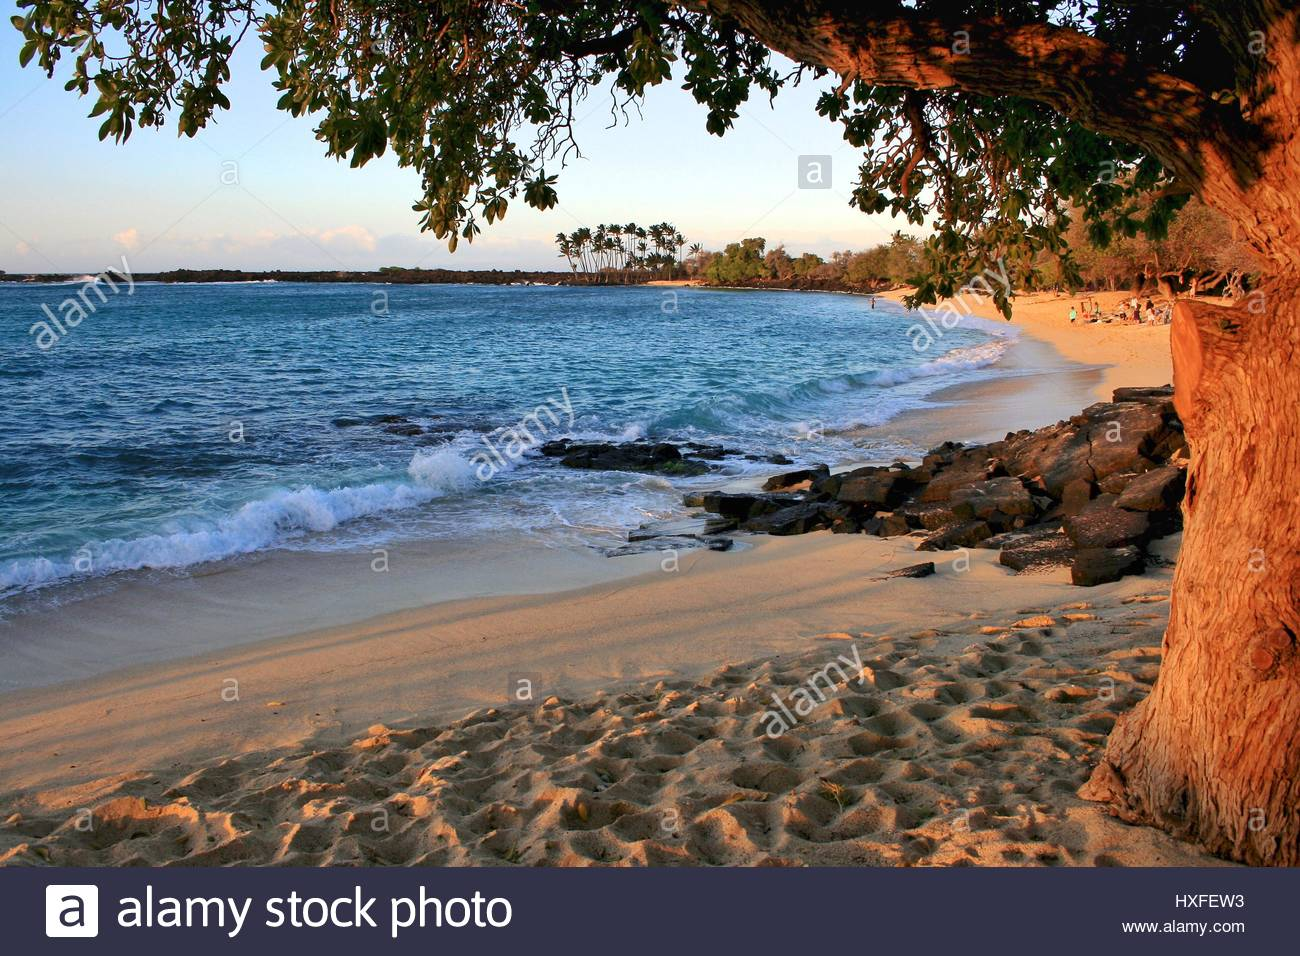 mahaiula-beach-on-big-island-hawaii-before-sunset-HXFEW3.jpg